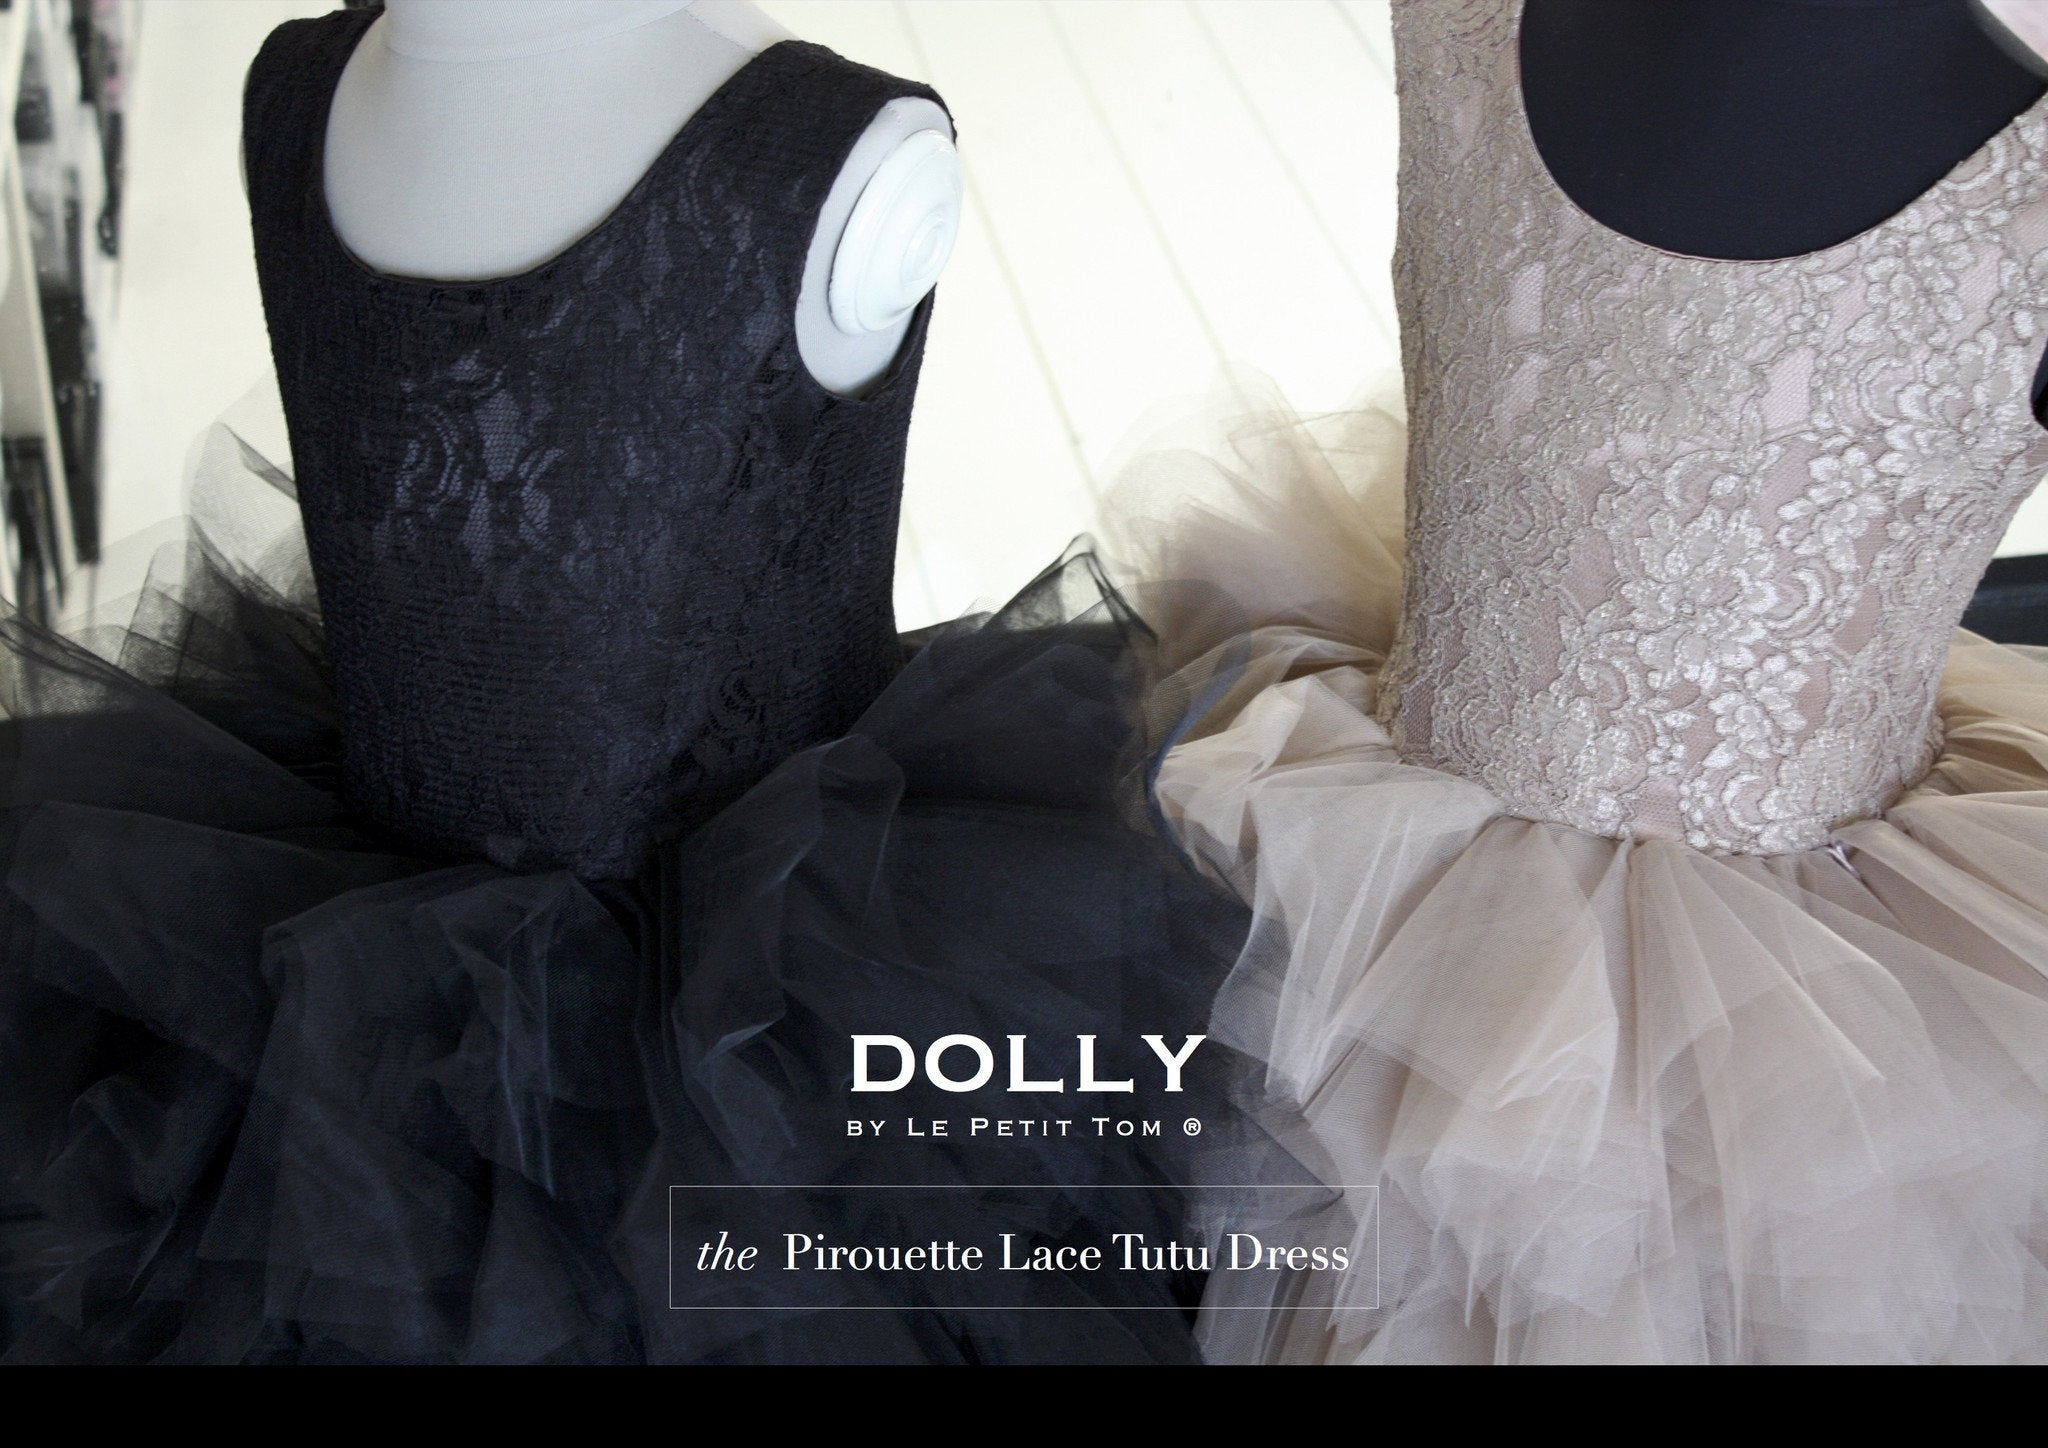 DOLLY by Le Petit Tom ® the PIROUETTE DRESS black